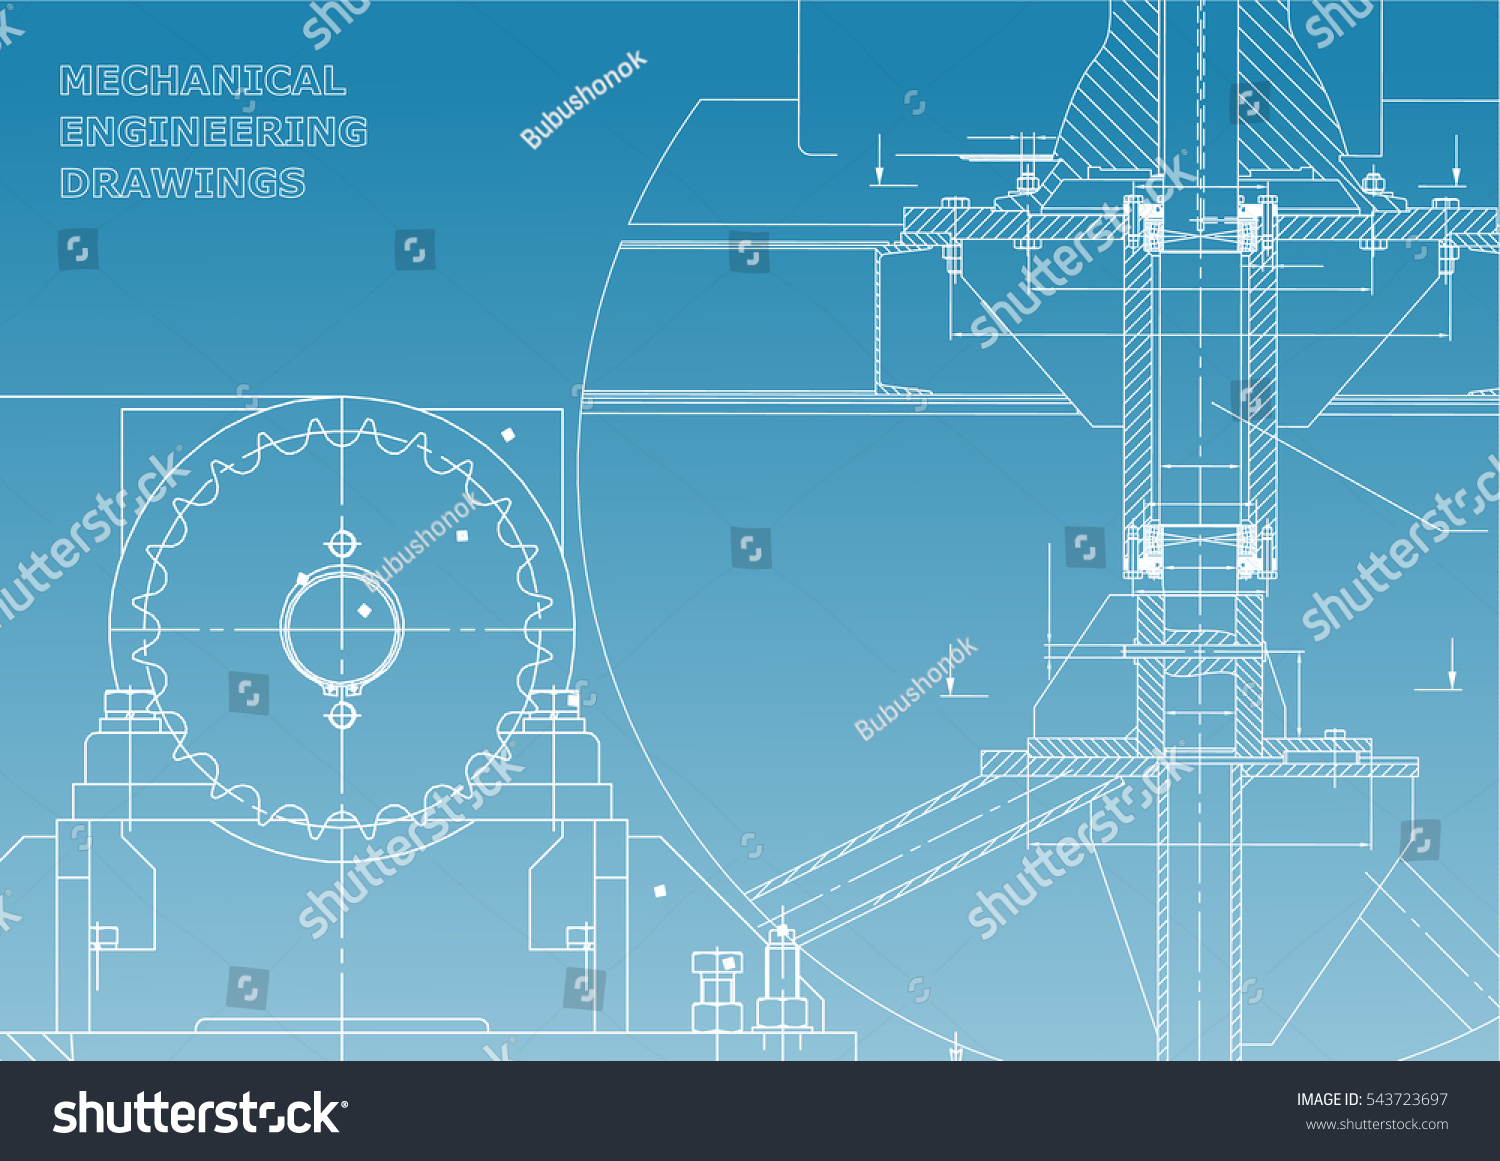 Blueprints mechanical construction engineering illustrations blueprints mechanical construction engineering illustrations technical design banner blue and white malvernweather Choice Image